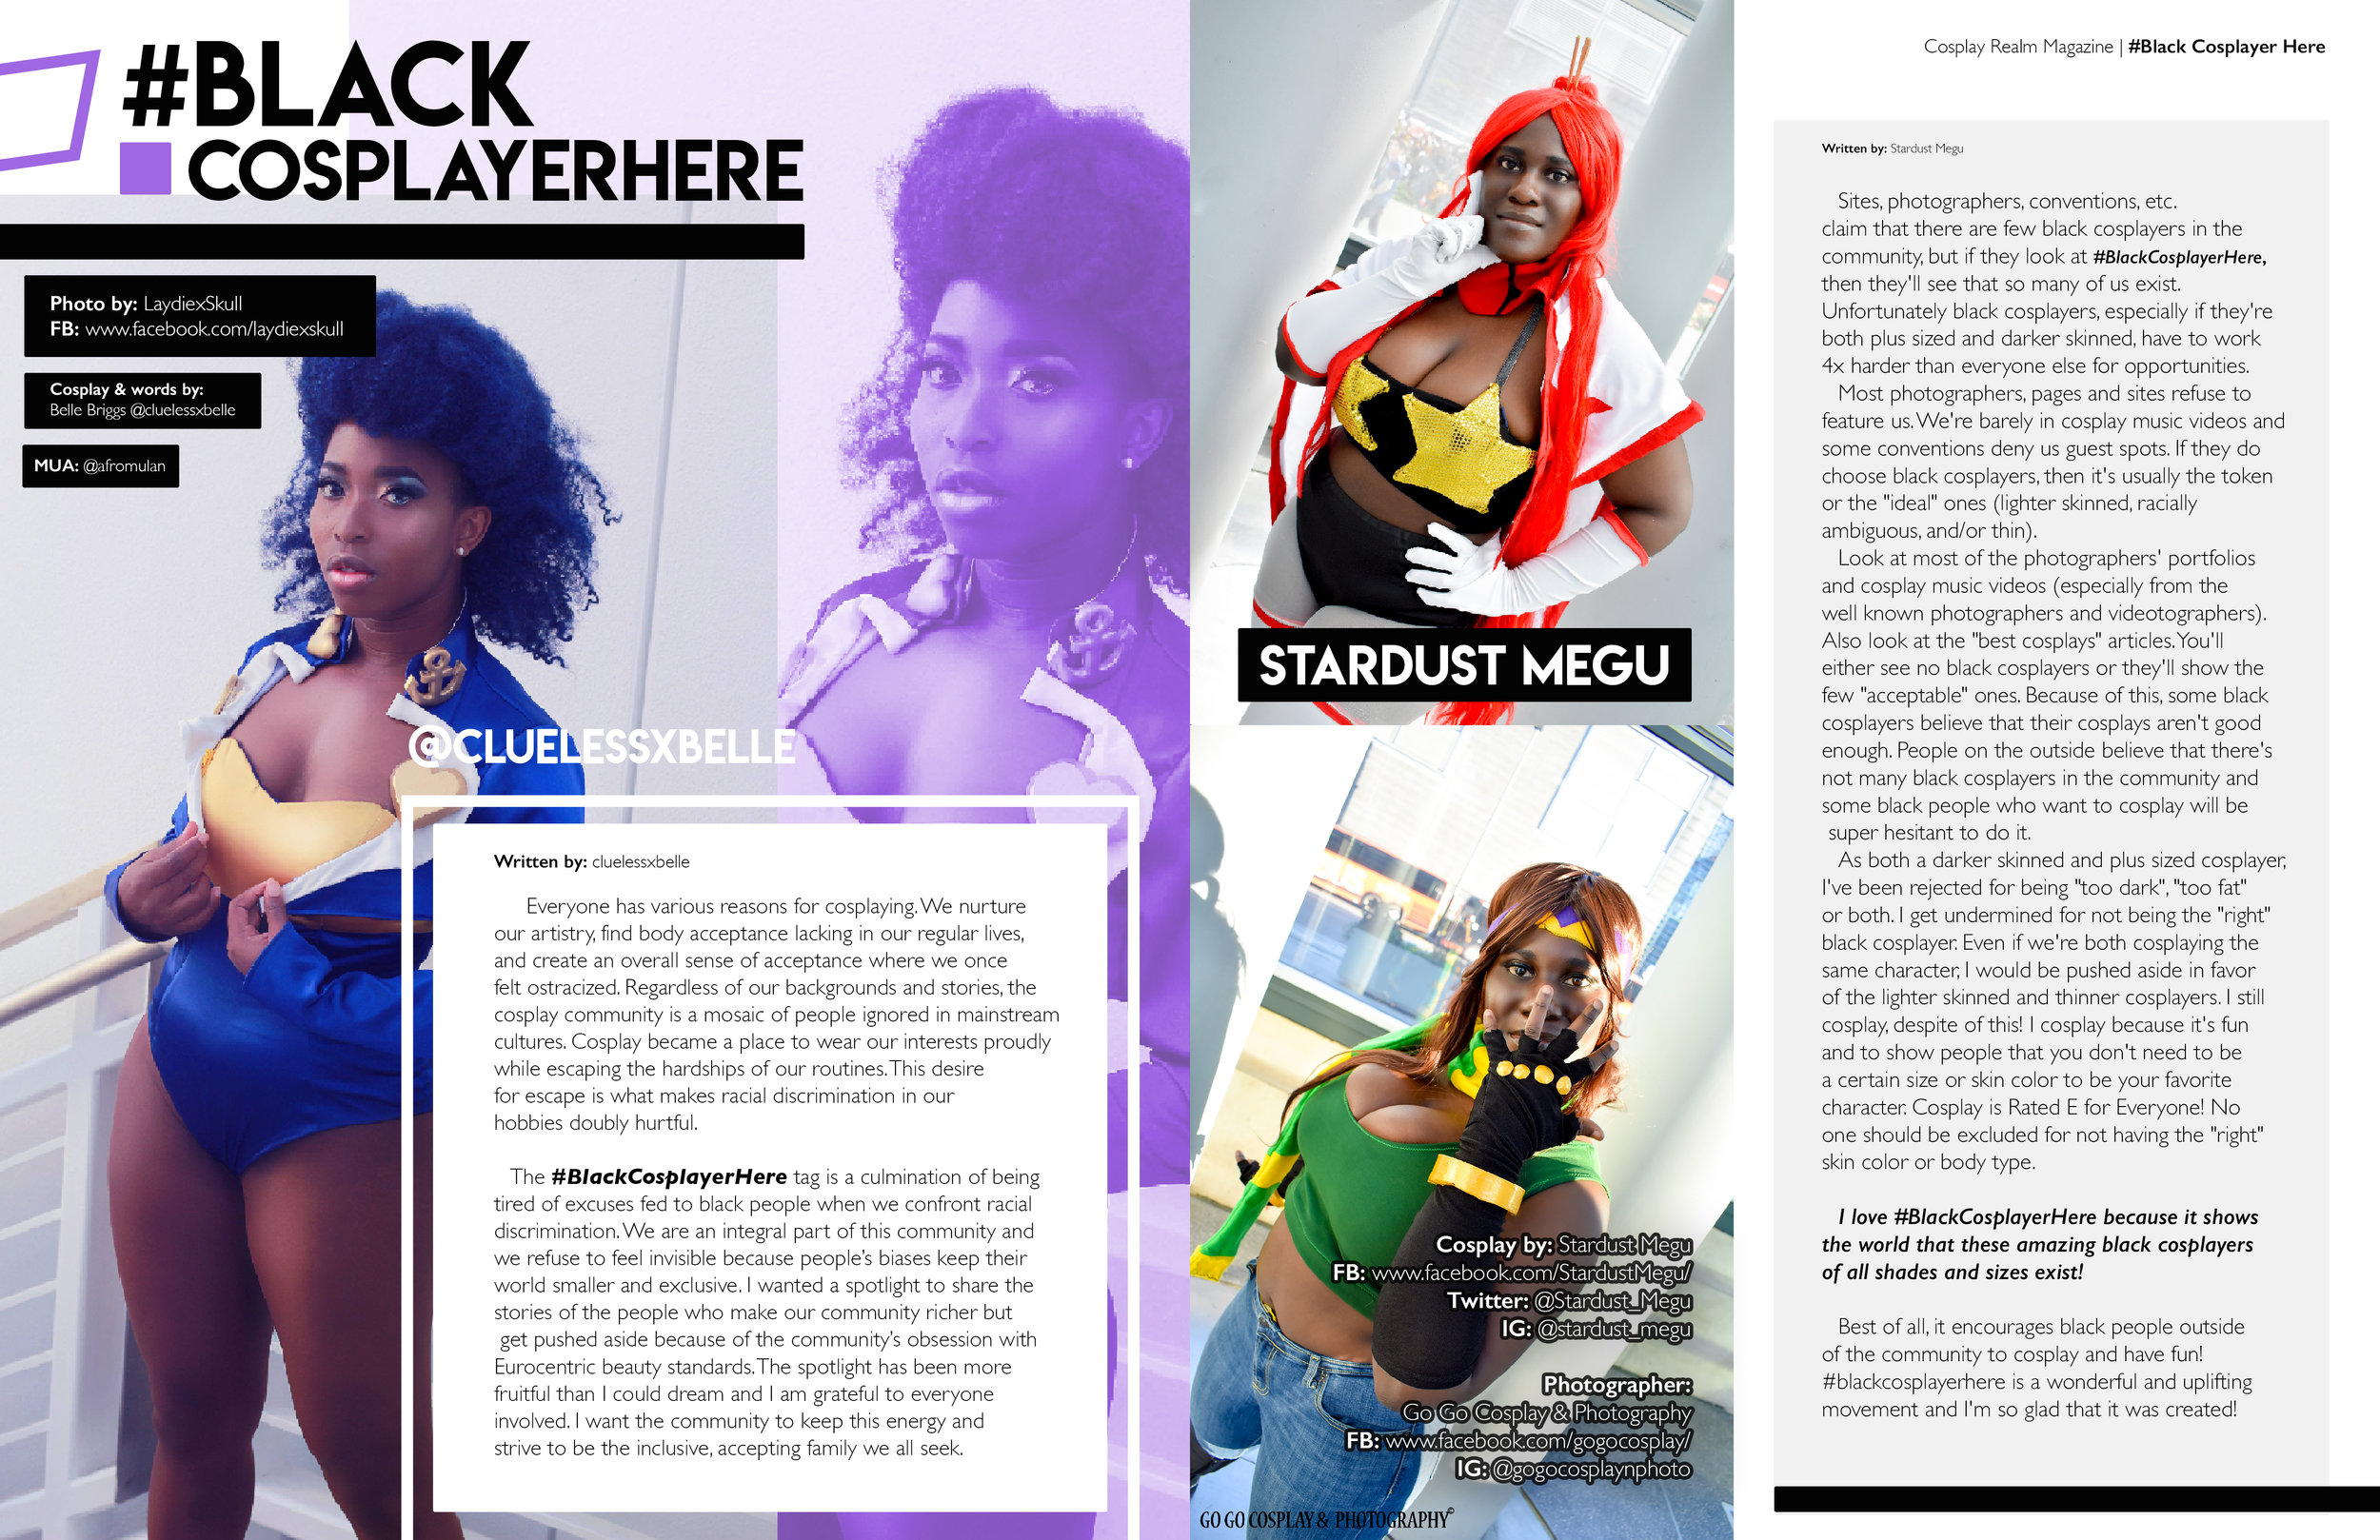 Excerpt from the issue ft words from CluelessXBelle and Stardust Megu